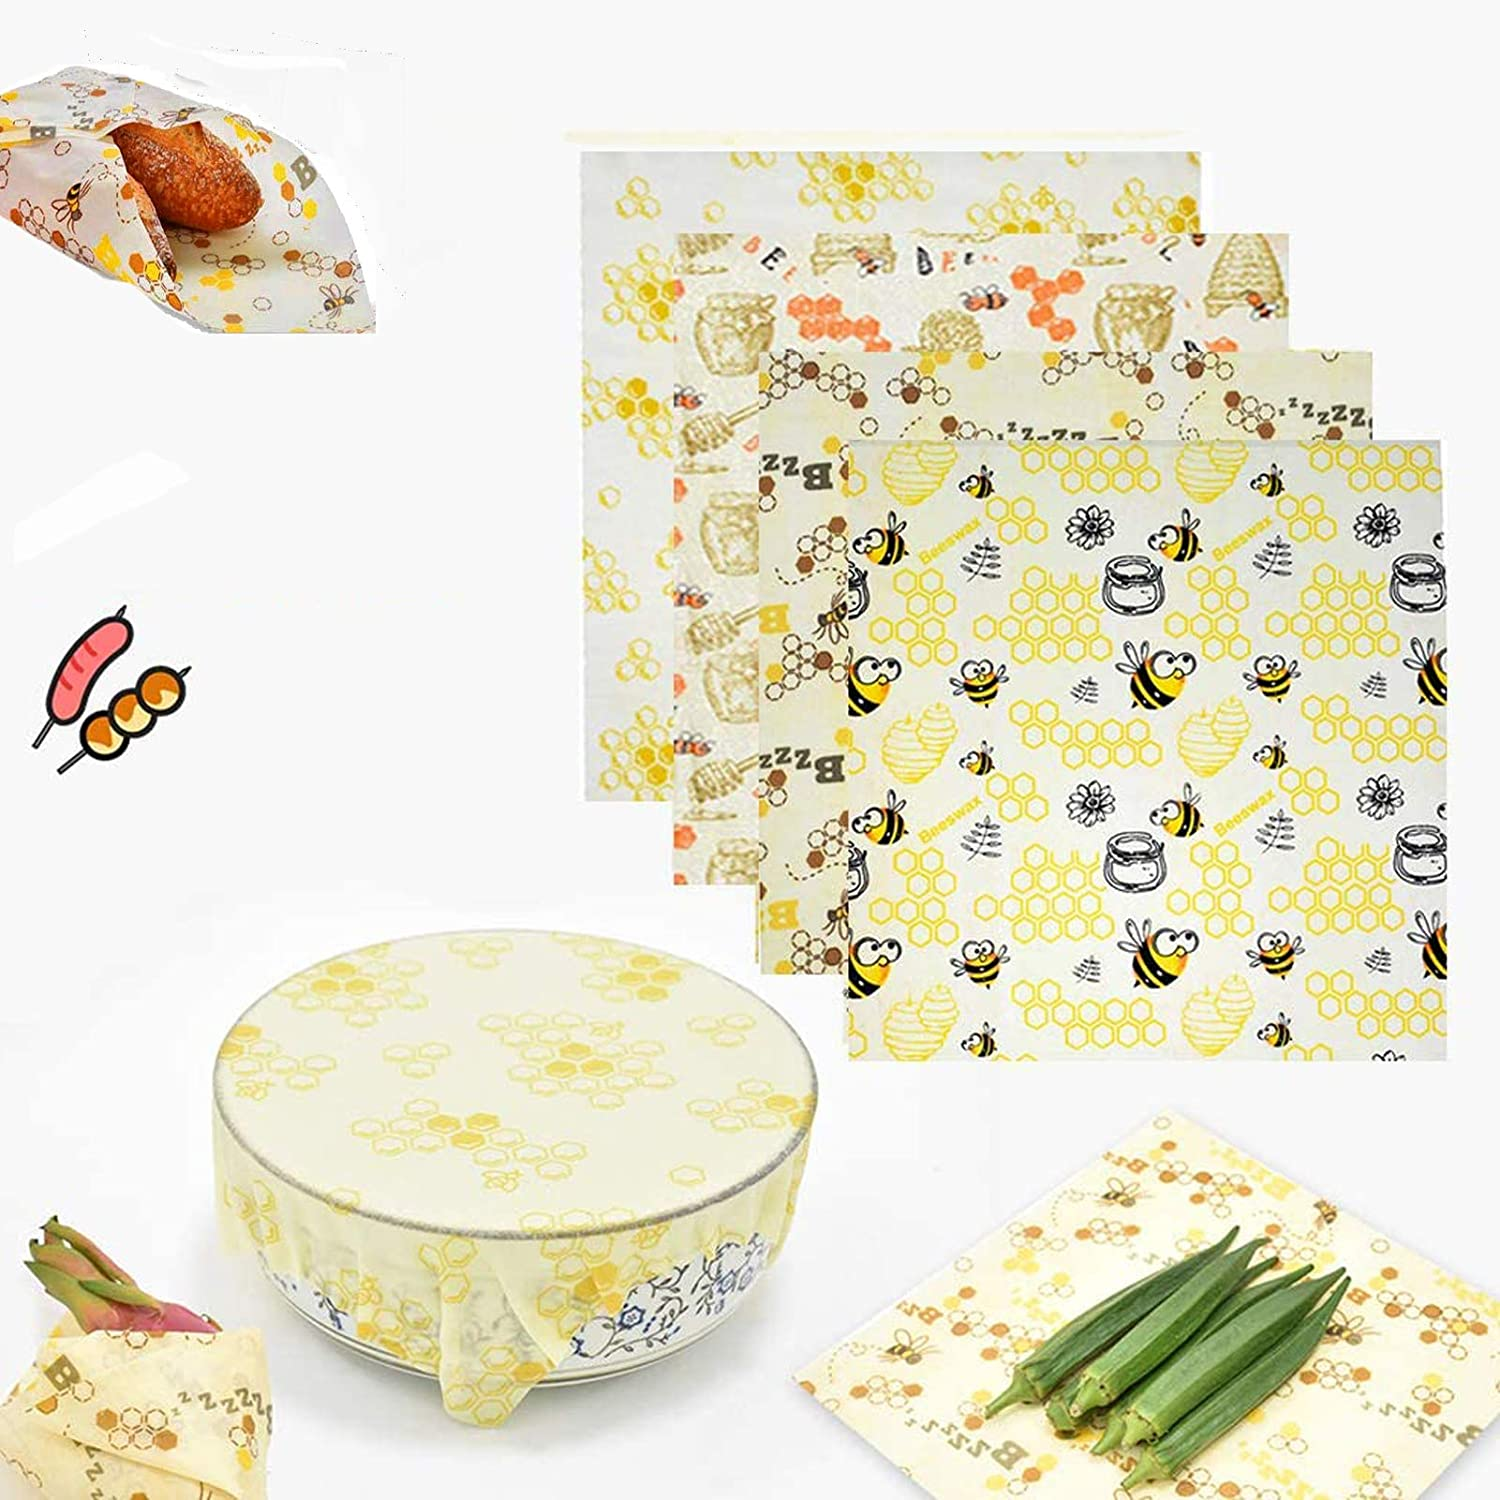 Htovila Beeswax Wraps 1 Roll Washable Reusable Eco-friendly Food Wrapper Cuttable Sandwich Bread Fruit Vegetables Lunch Storage for Kitchen Freezer Refrigerator-Cartoon Bee